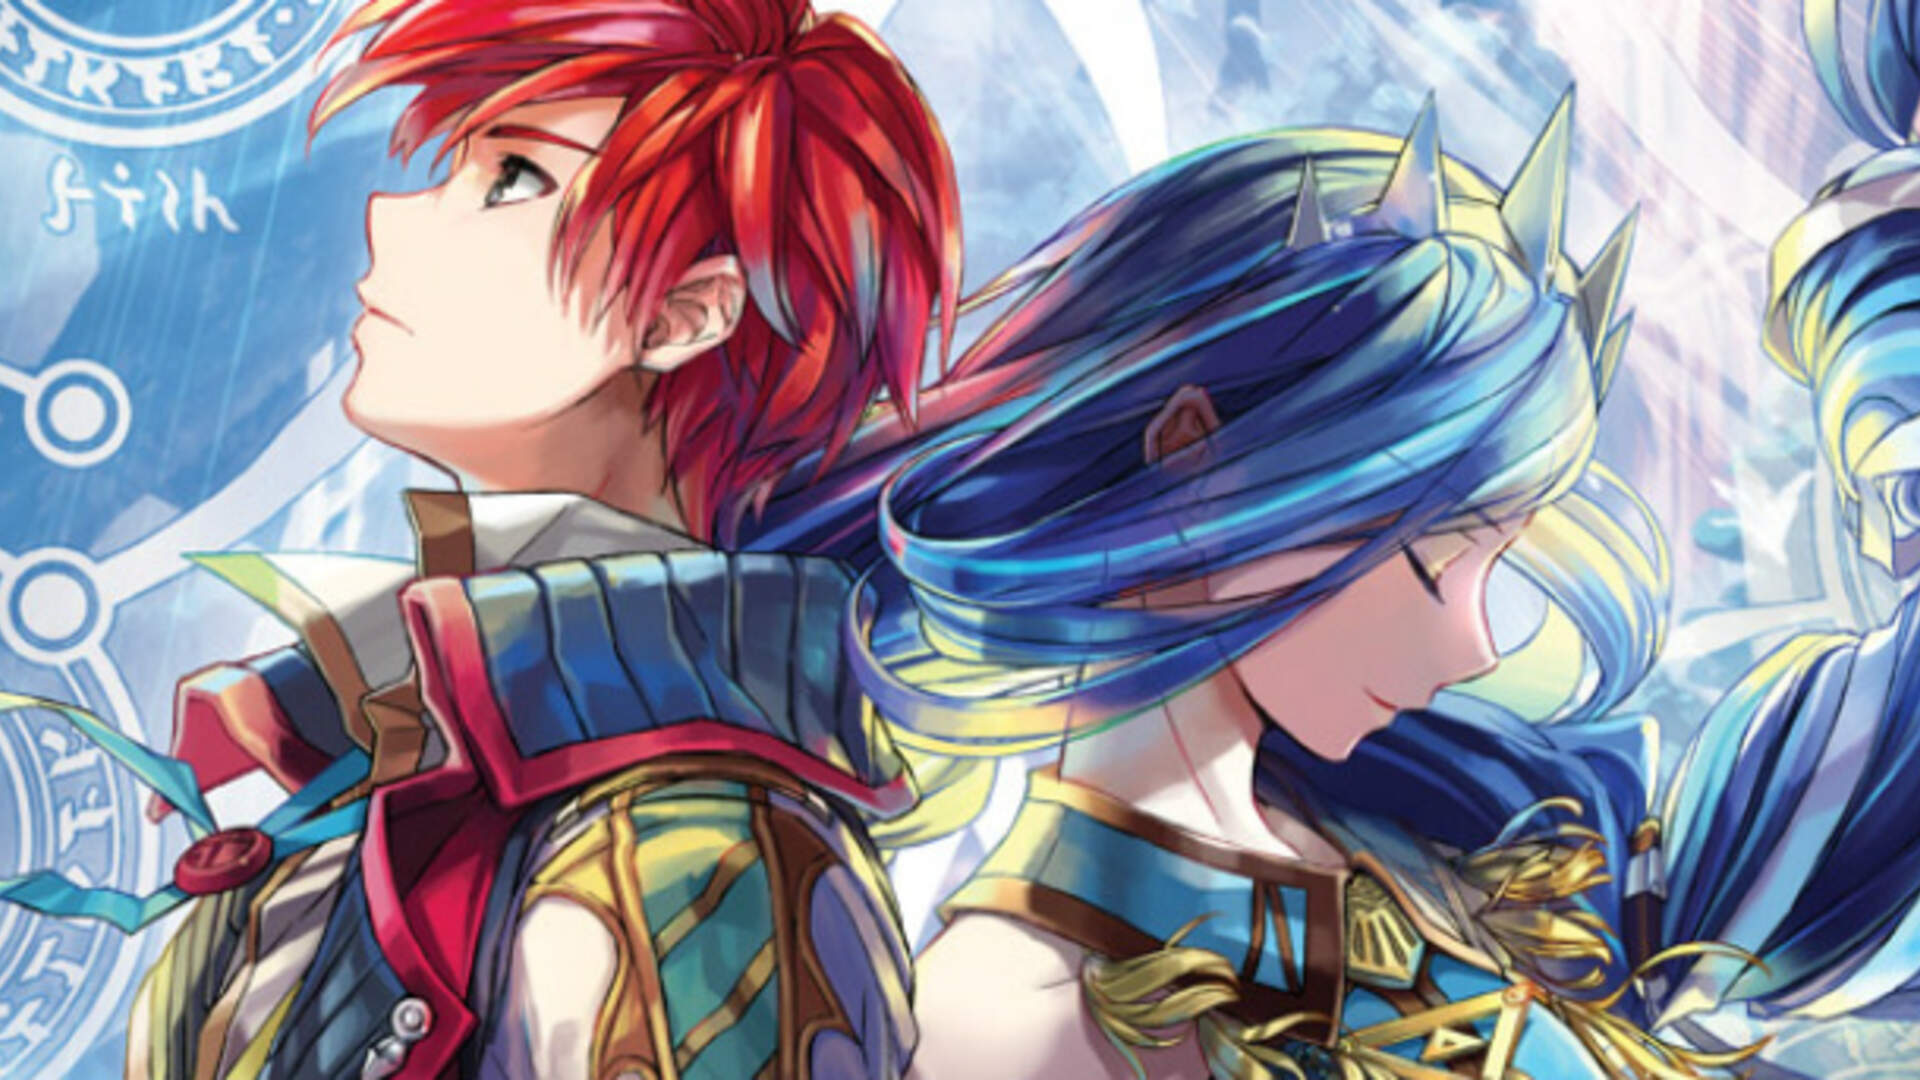 Ys 8: Lacrimosa of Dana Is Getting a Switch Release This Summer